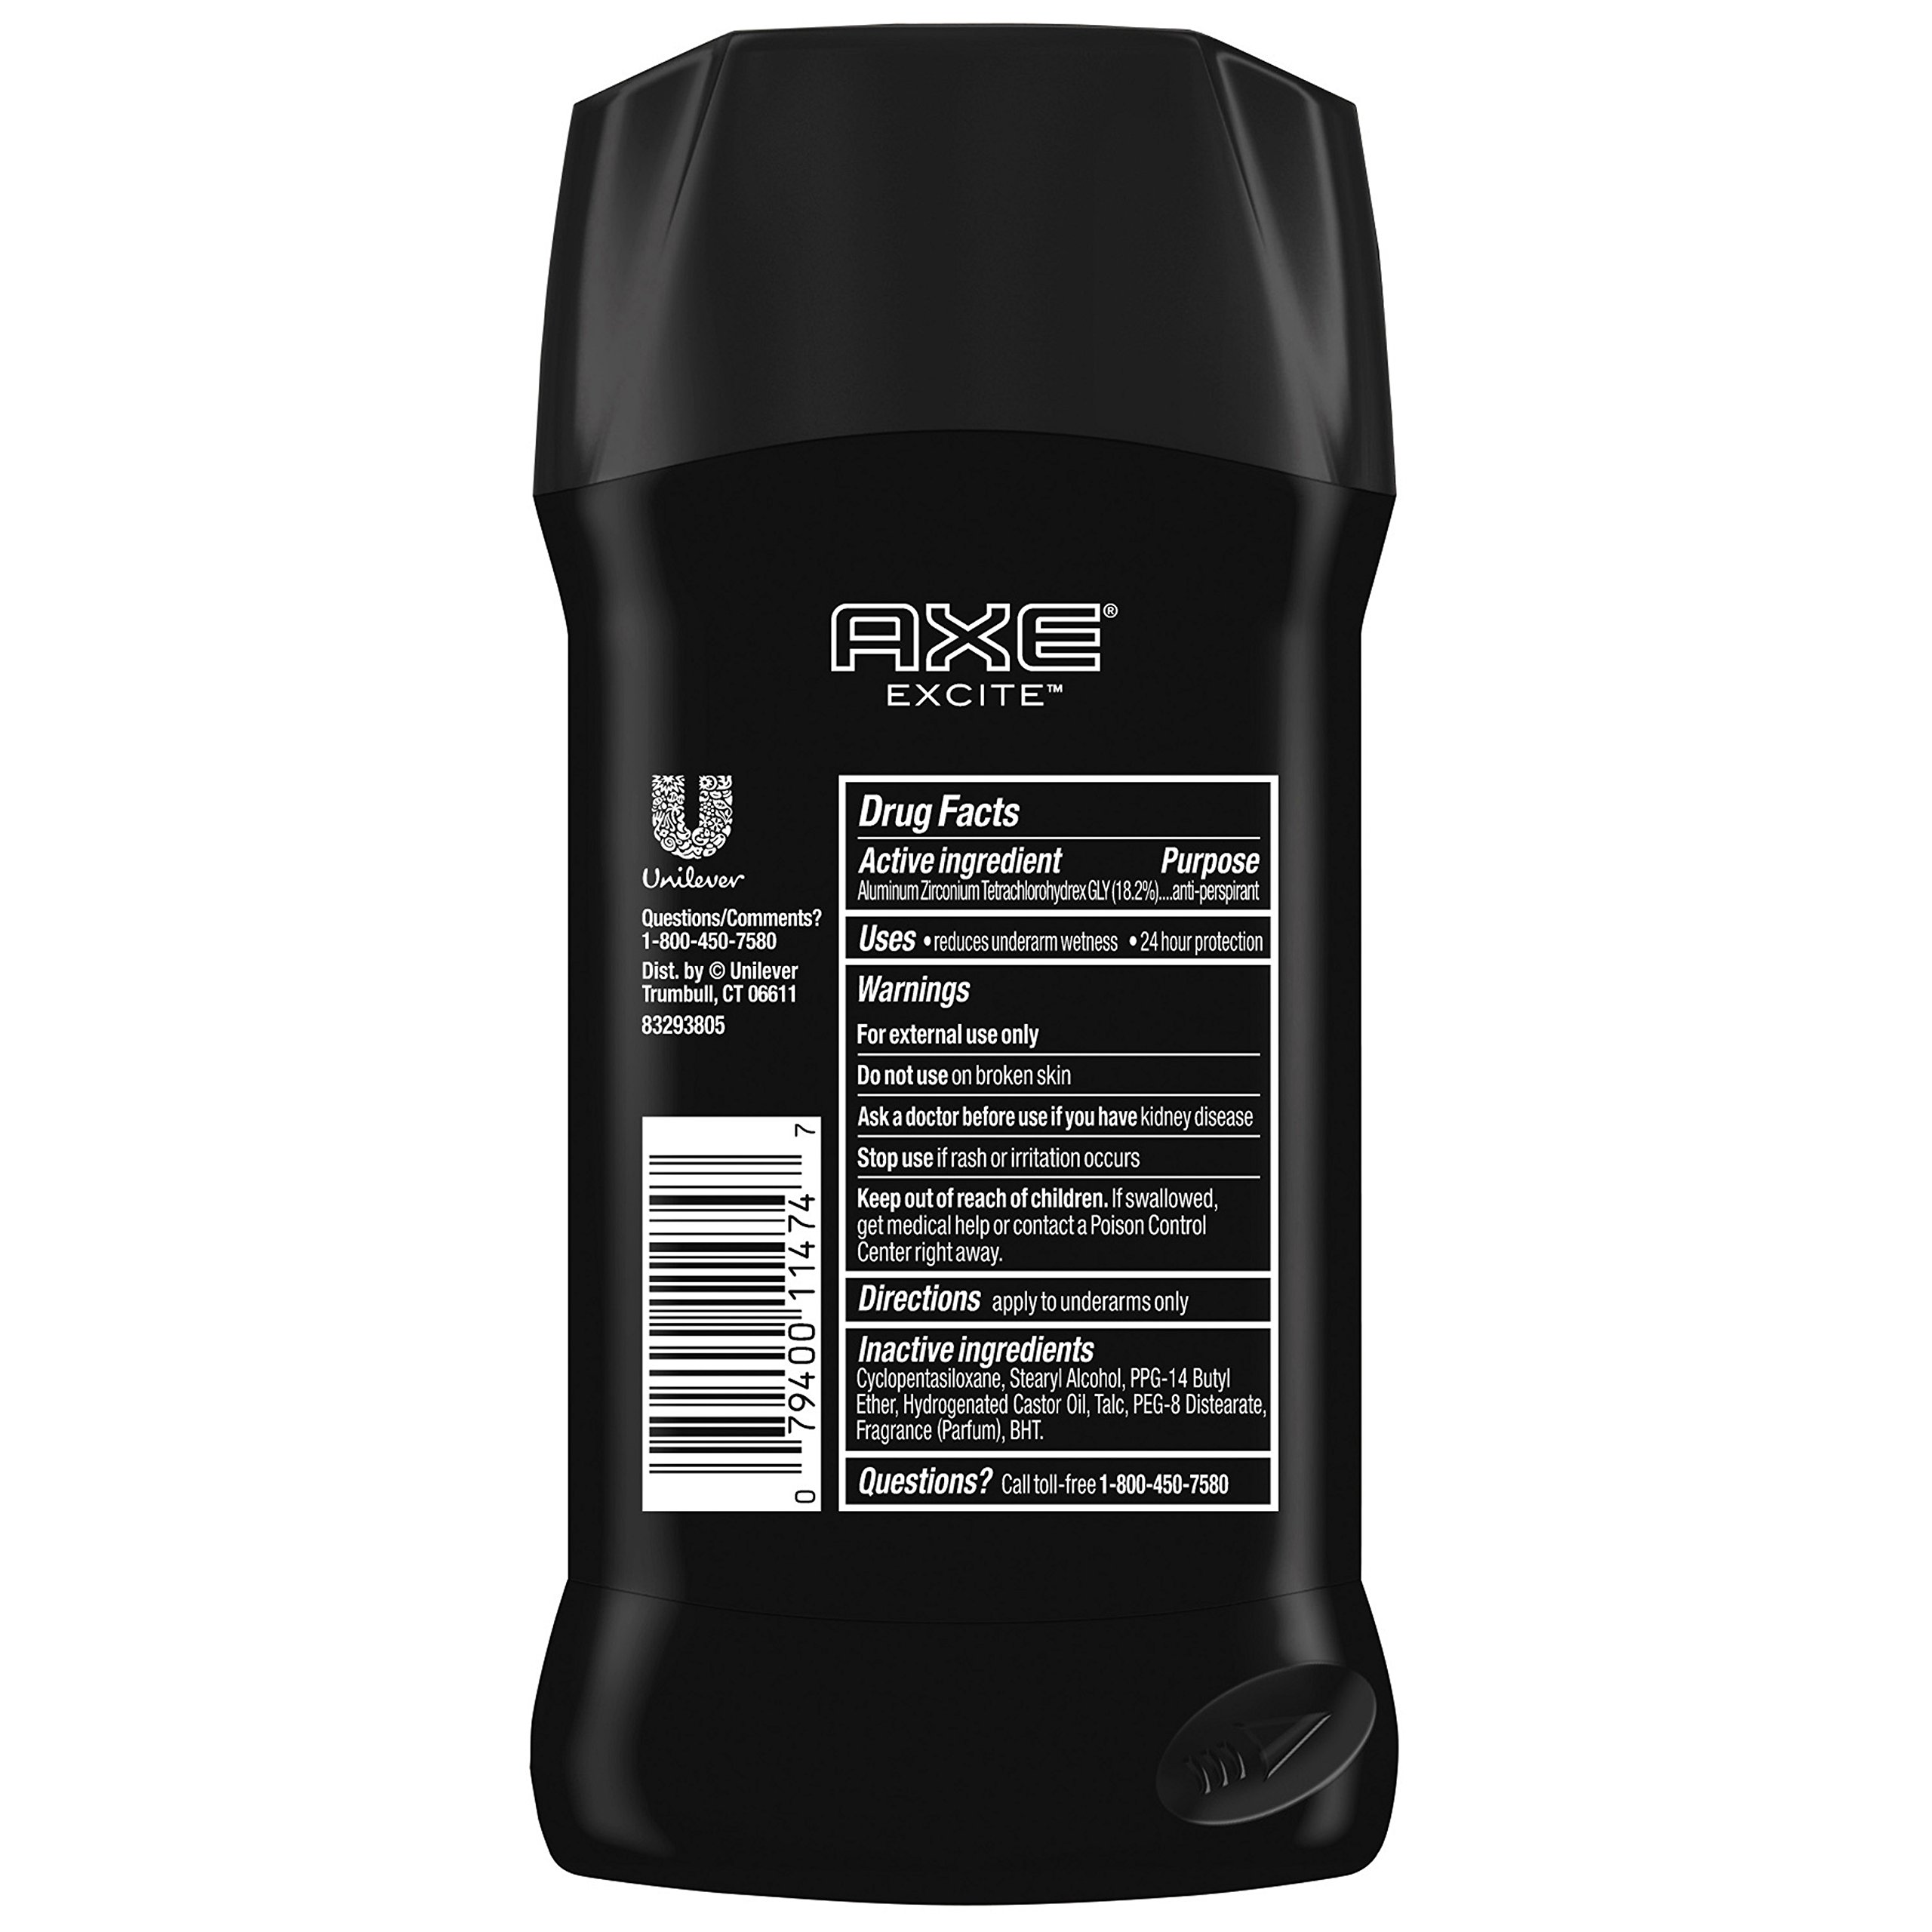 AXE Antiperspirant Deodorant Stick for Men, Excite, 2.7 Ounce (Pack of 6) by AXE (Image #2)